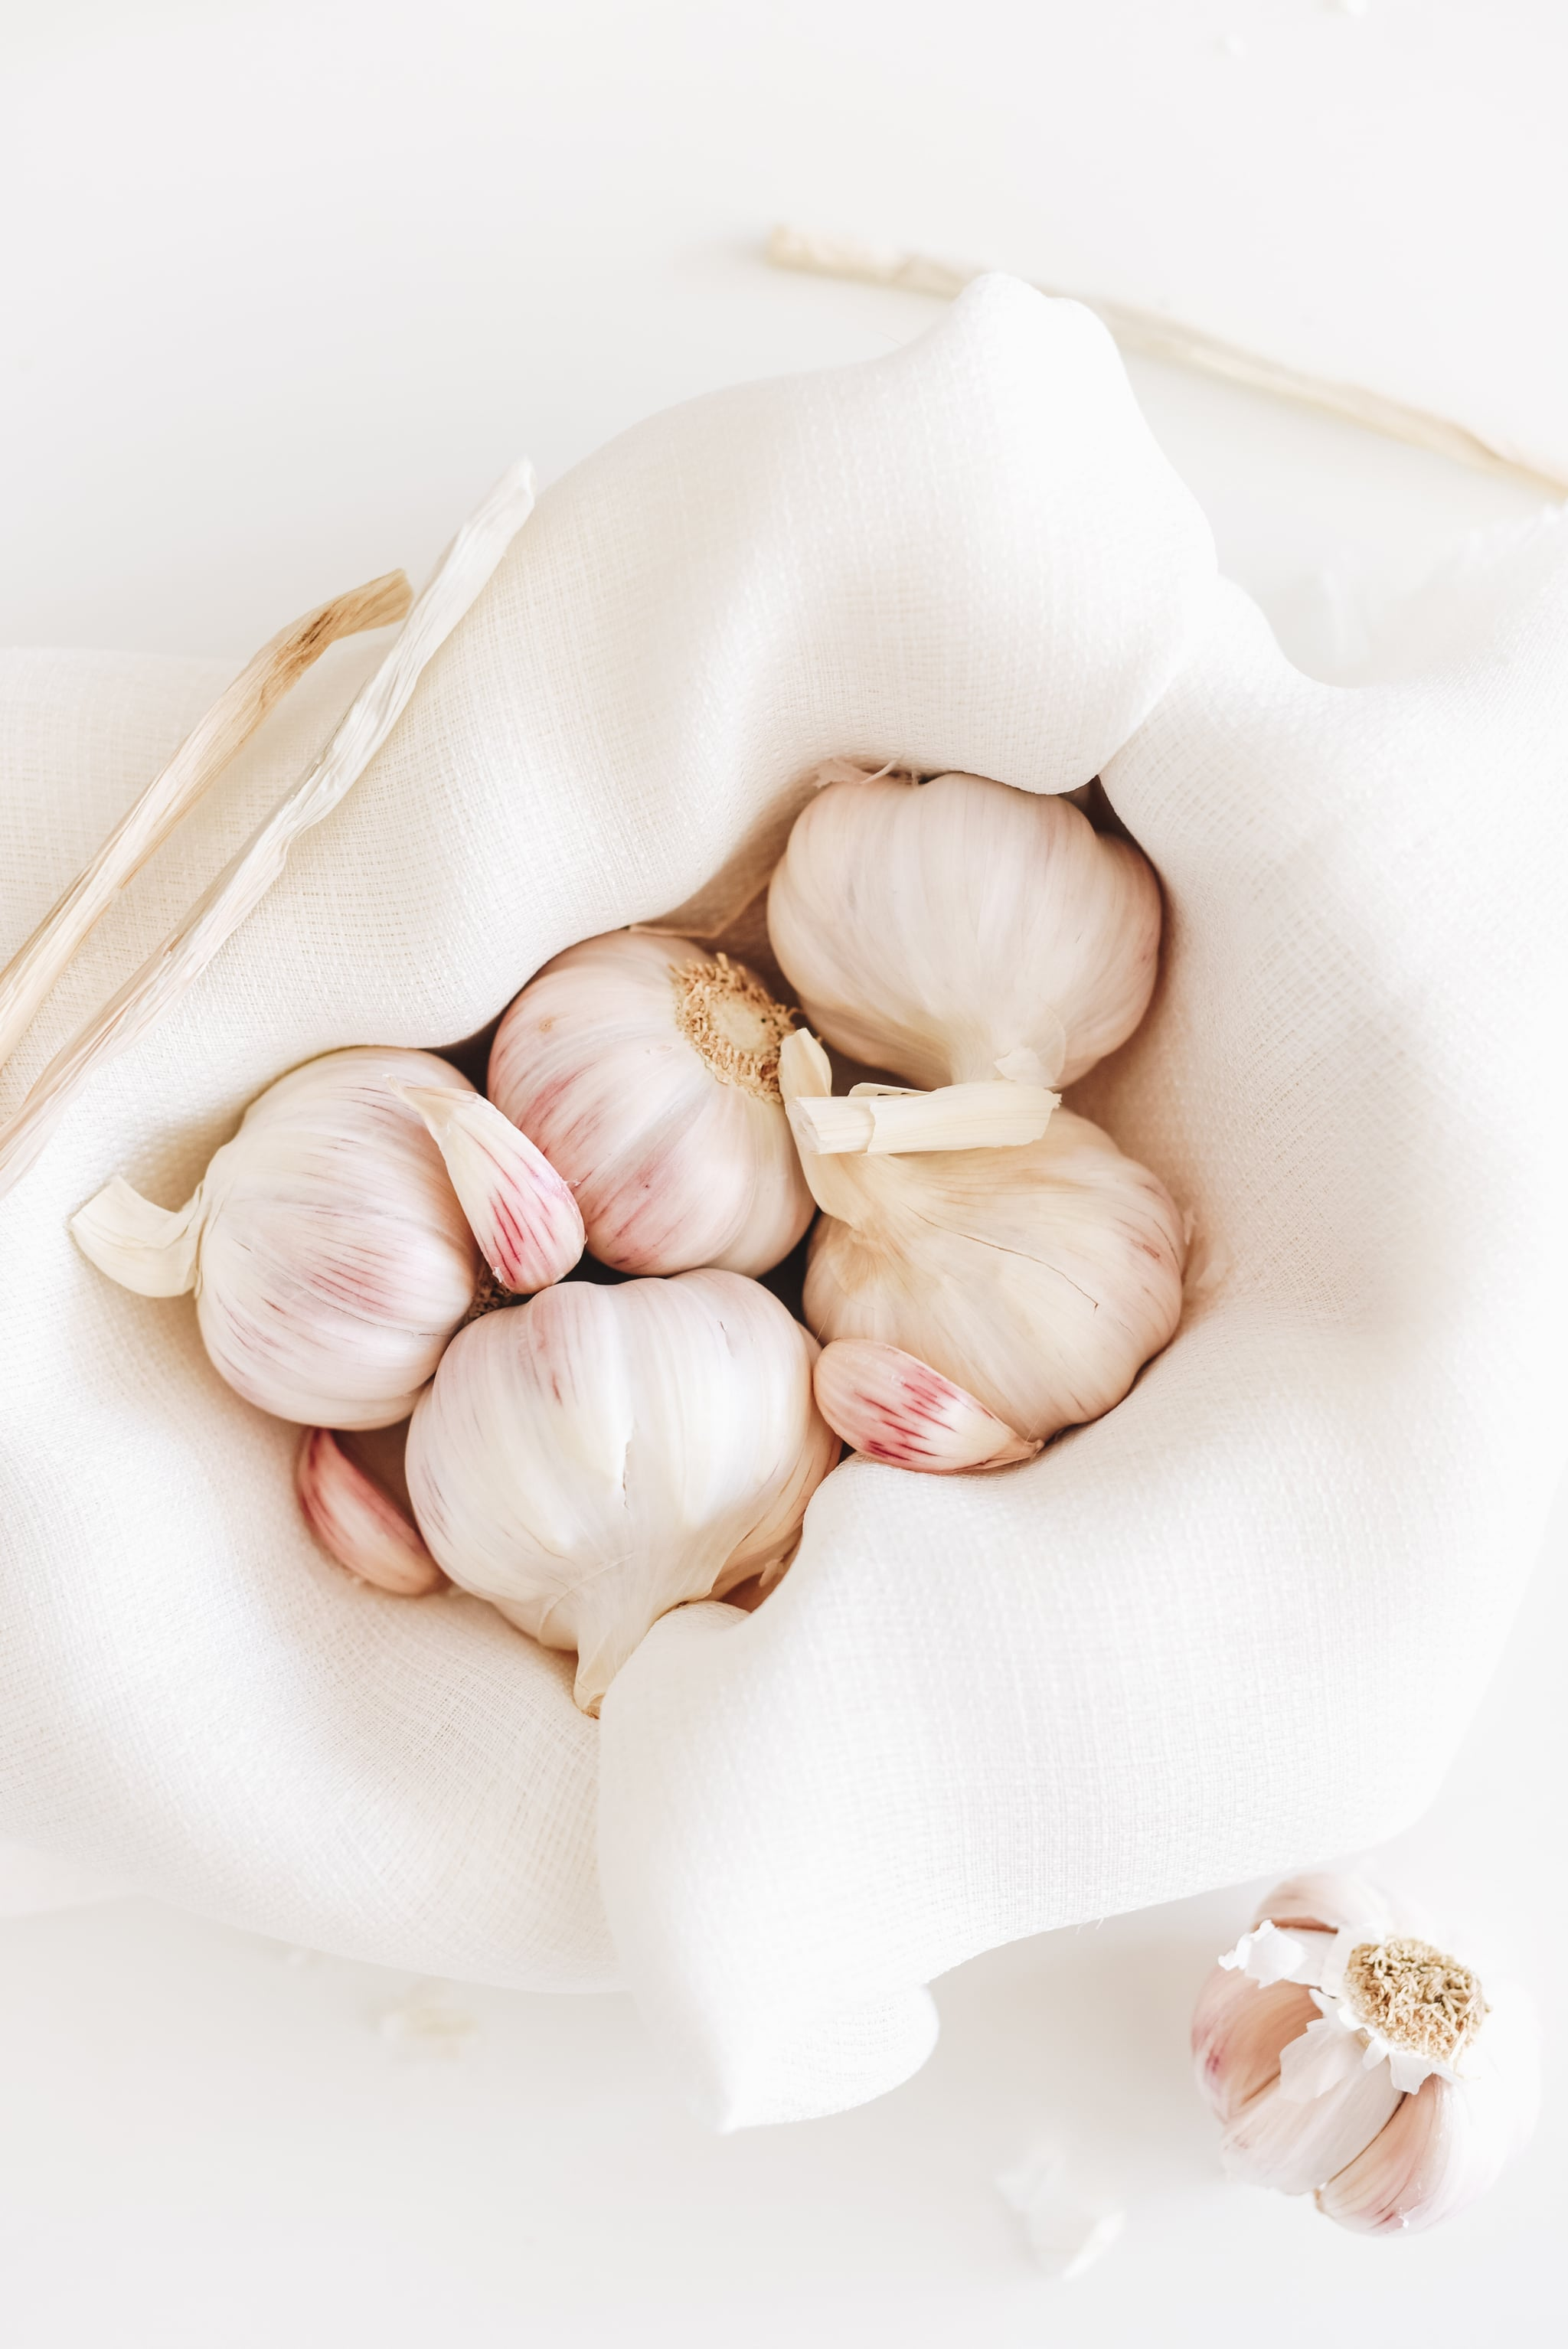 what are the benefits of eating raw garlic daily? | popsugar